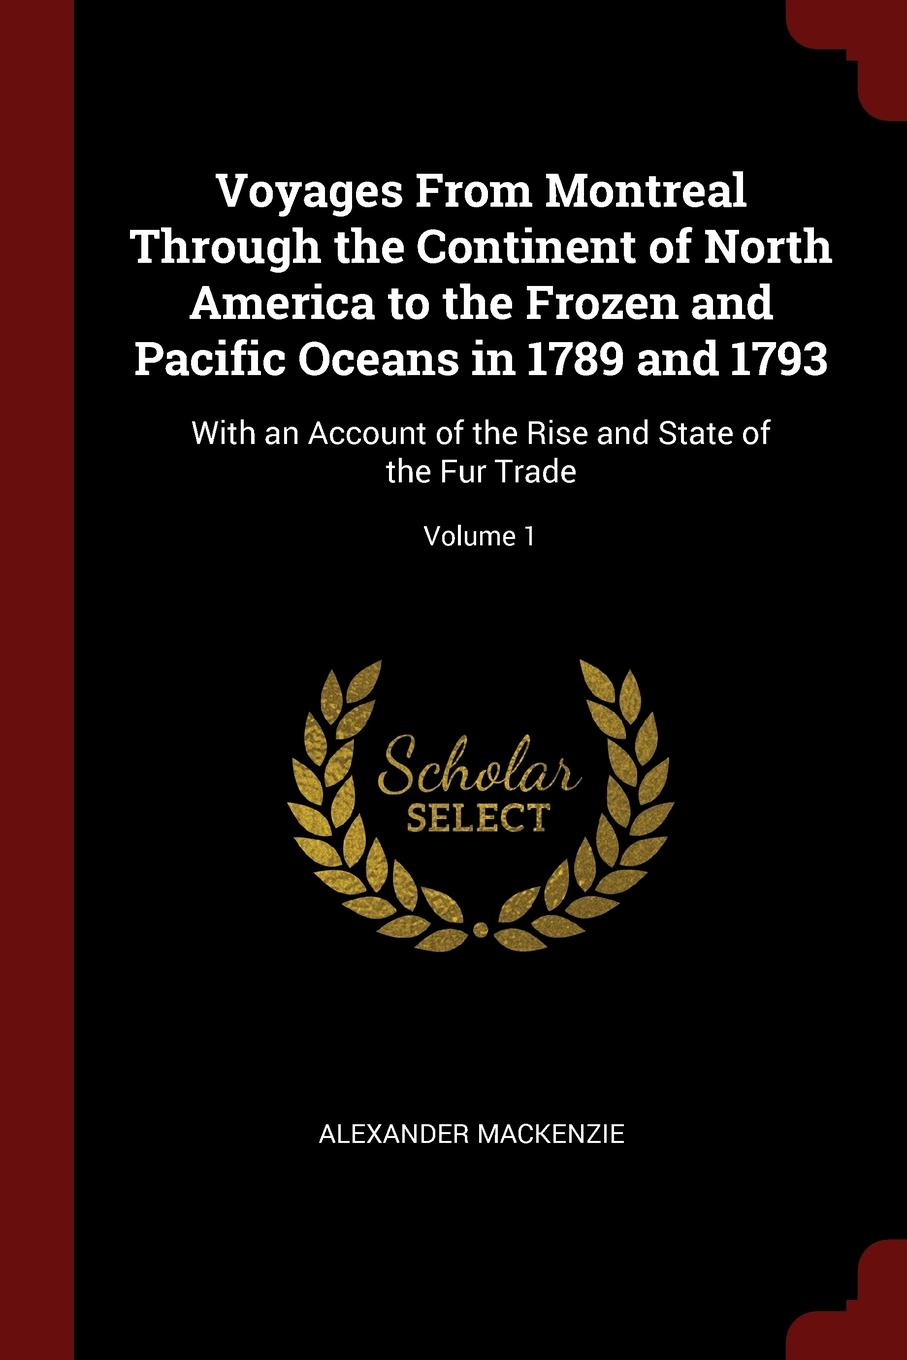 Alexander Mackenzie Voyages From Montreal Through the Continent of North America to the Frozen and Pacific Oceans in 1789 and 1793. With an Account of the Rise and State of the Fur Trade; Volume 1 alexander mackenzie voyages from montreal through the continent of north america to the frozen and pacific oceans in 1789 and 1793